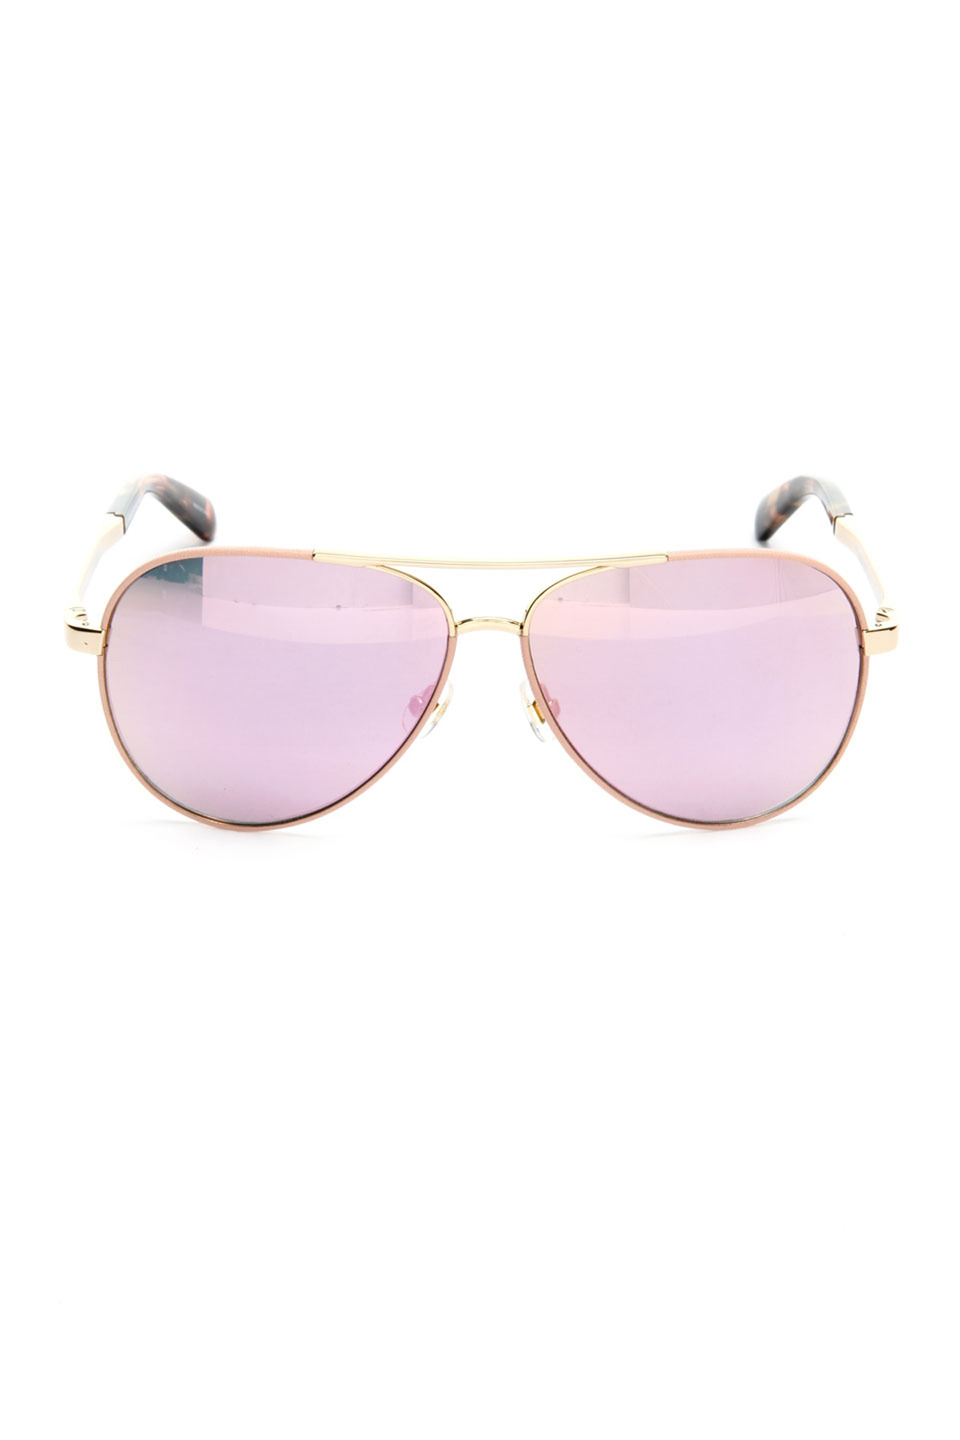 Kate Spade Ladies Sunglasses in Gold and Pink